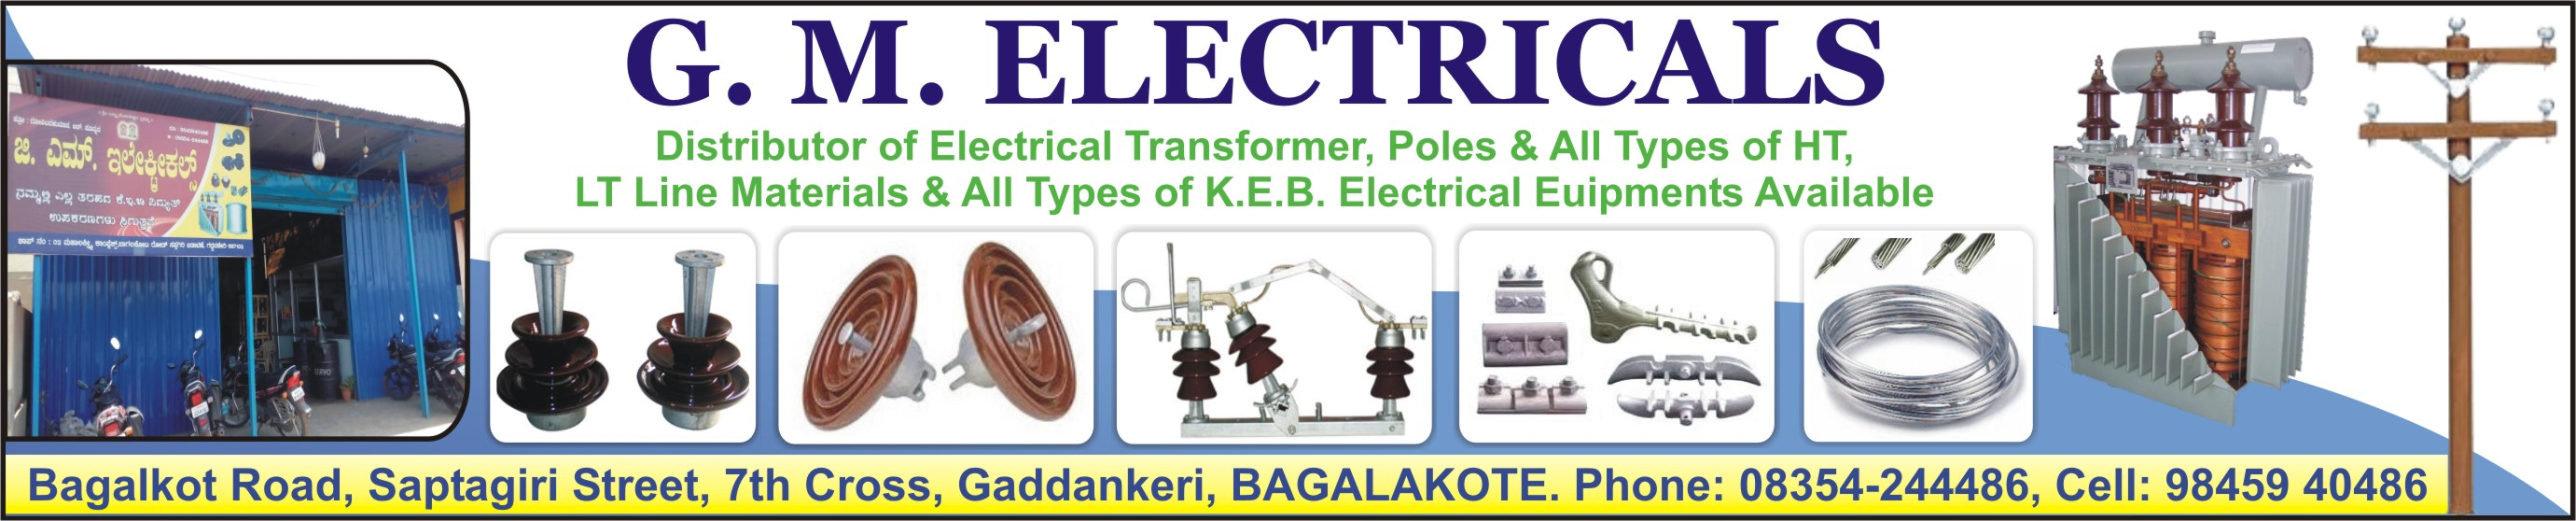 Electrical Equipment Dealers in Bagalkot